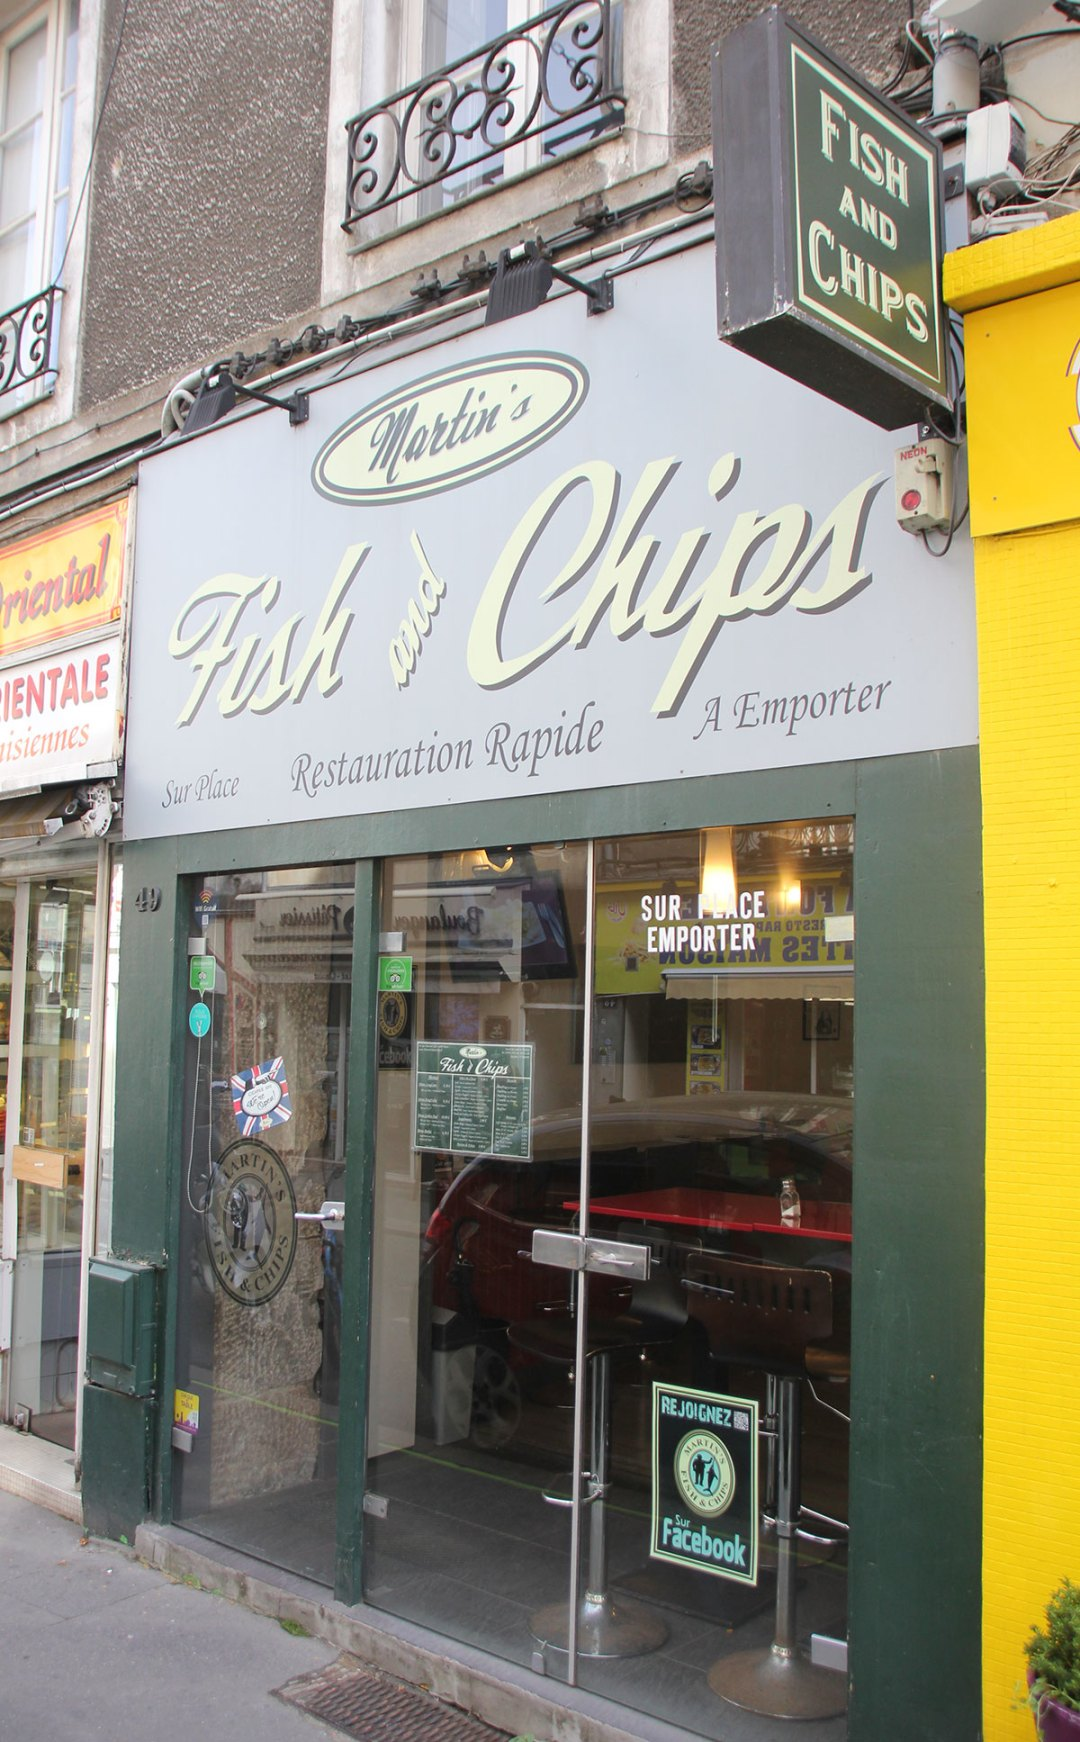 Martin's fish and chip shop